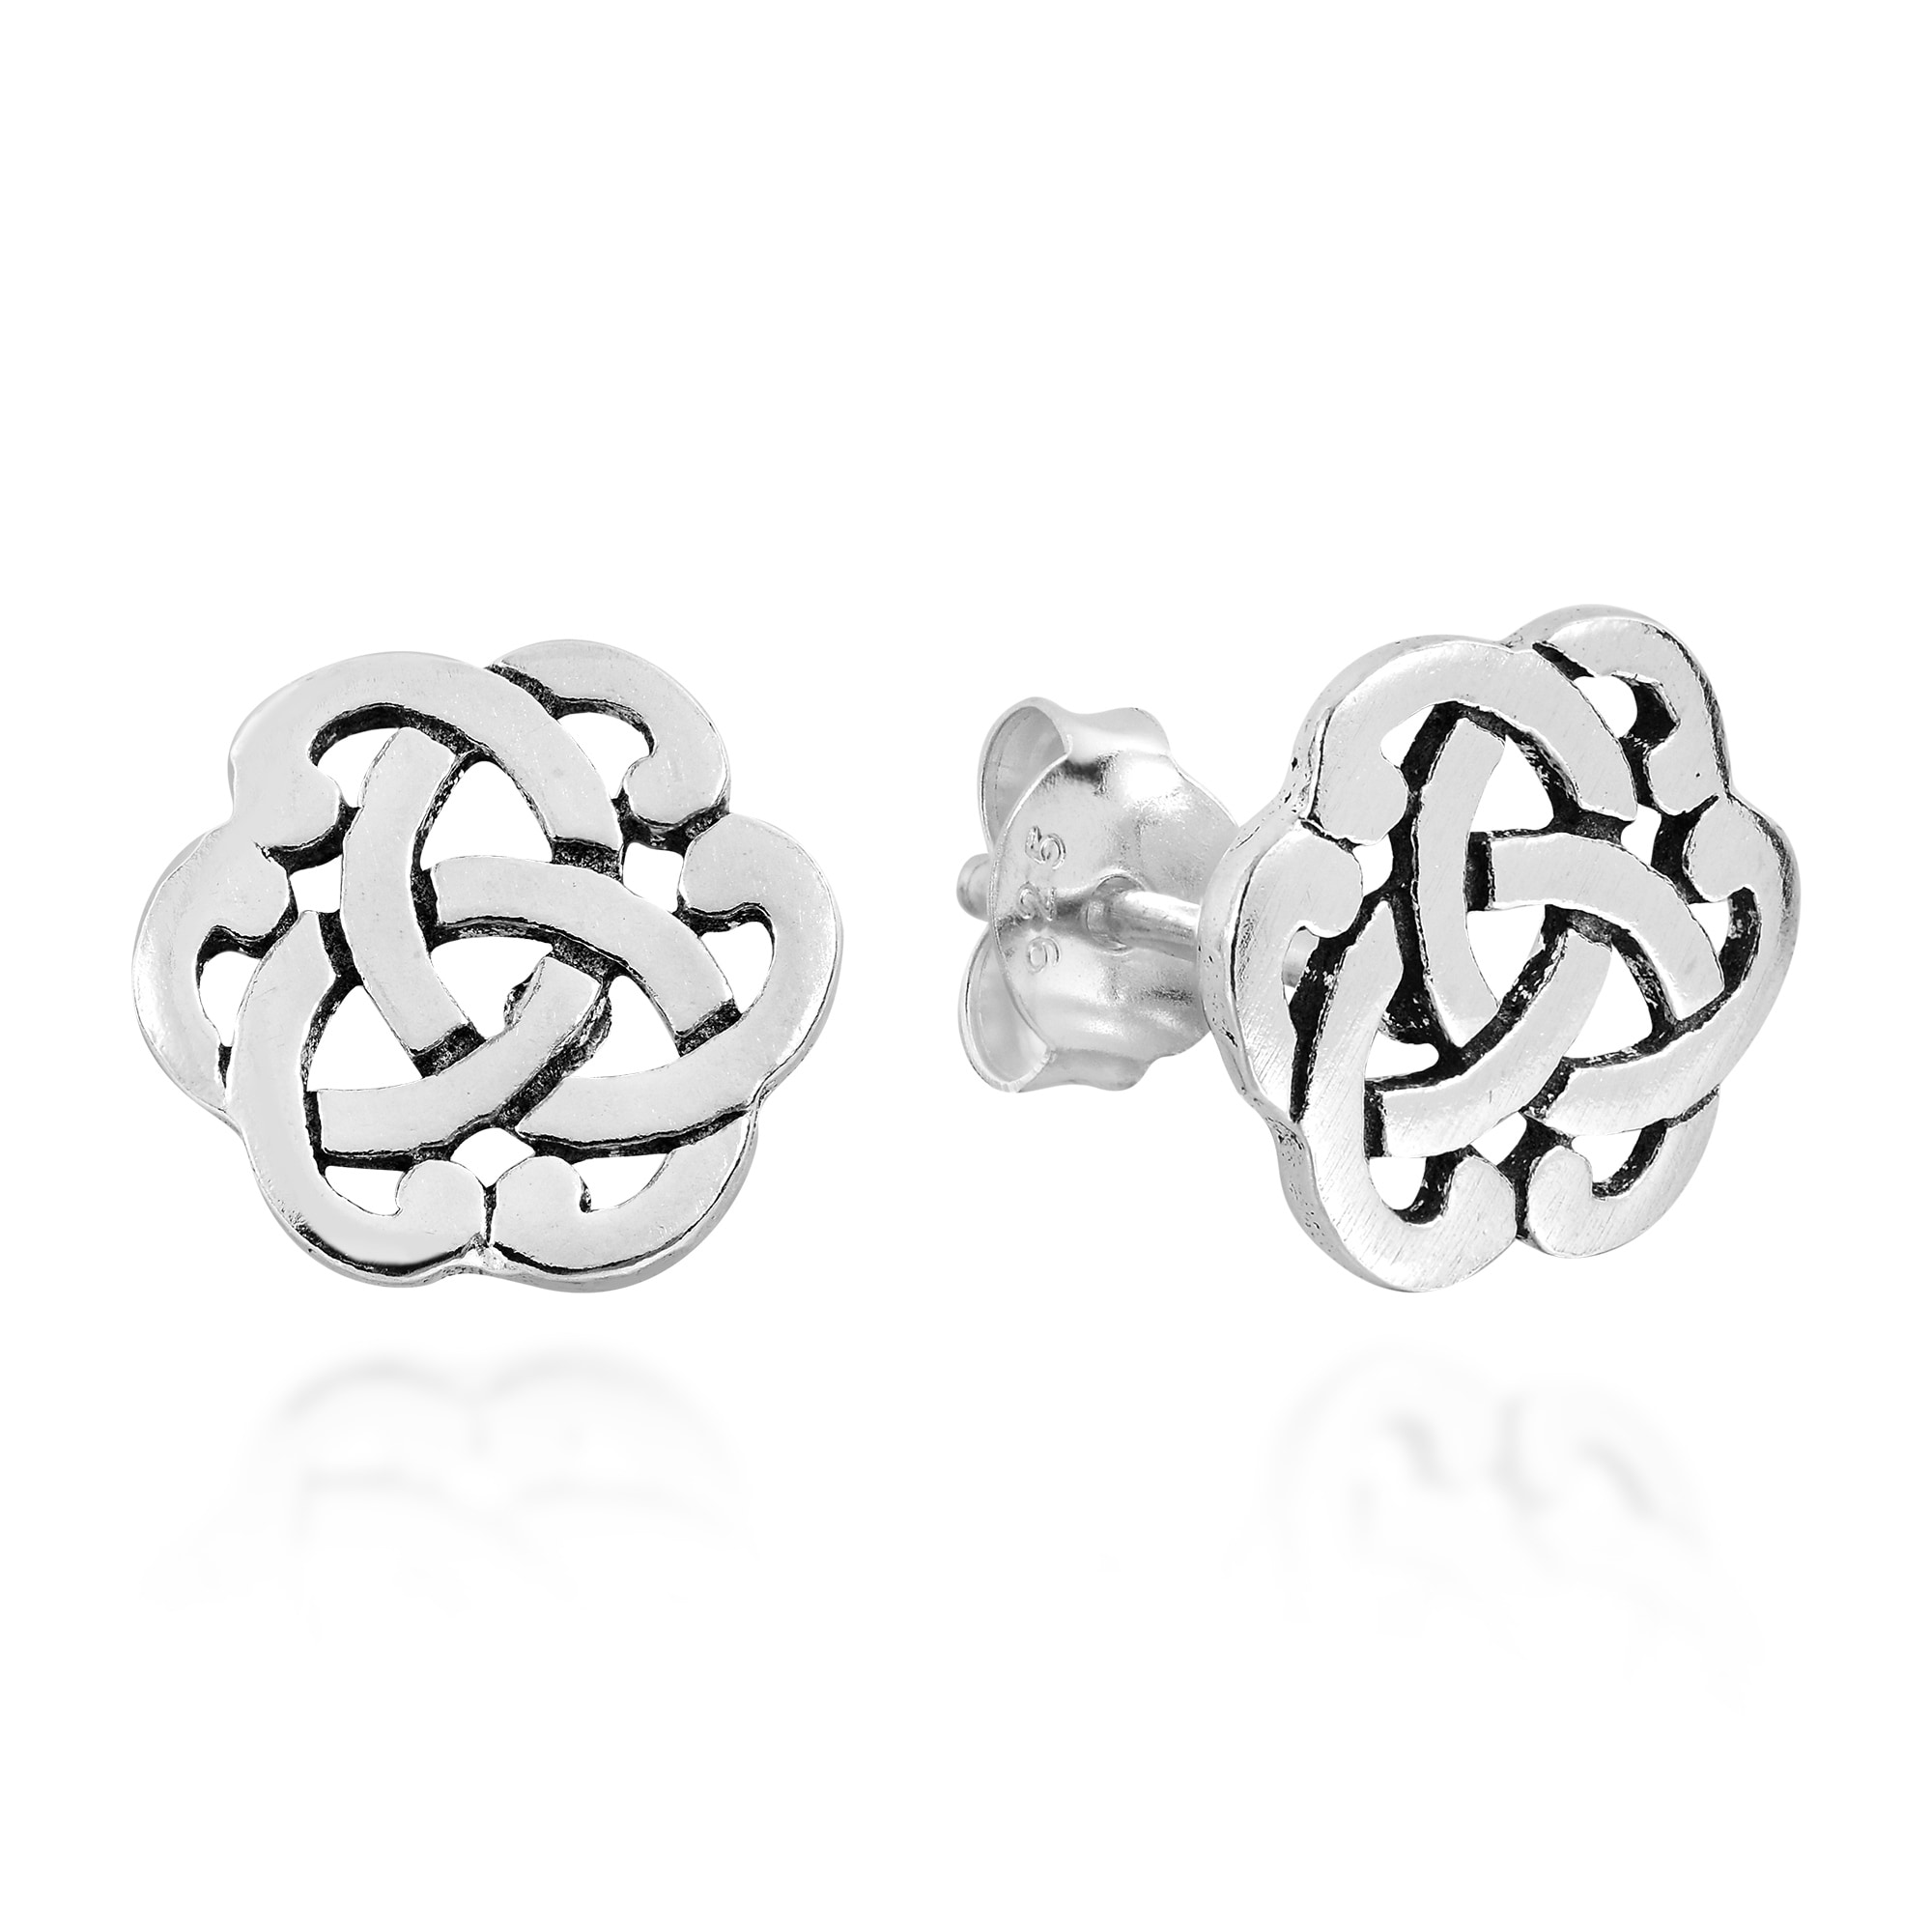 Interlocking Celtic Knot Sterling Silver Stud Earrings Thailand On Free Shipping Orders Over 45 11453669